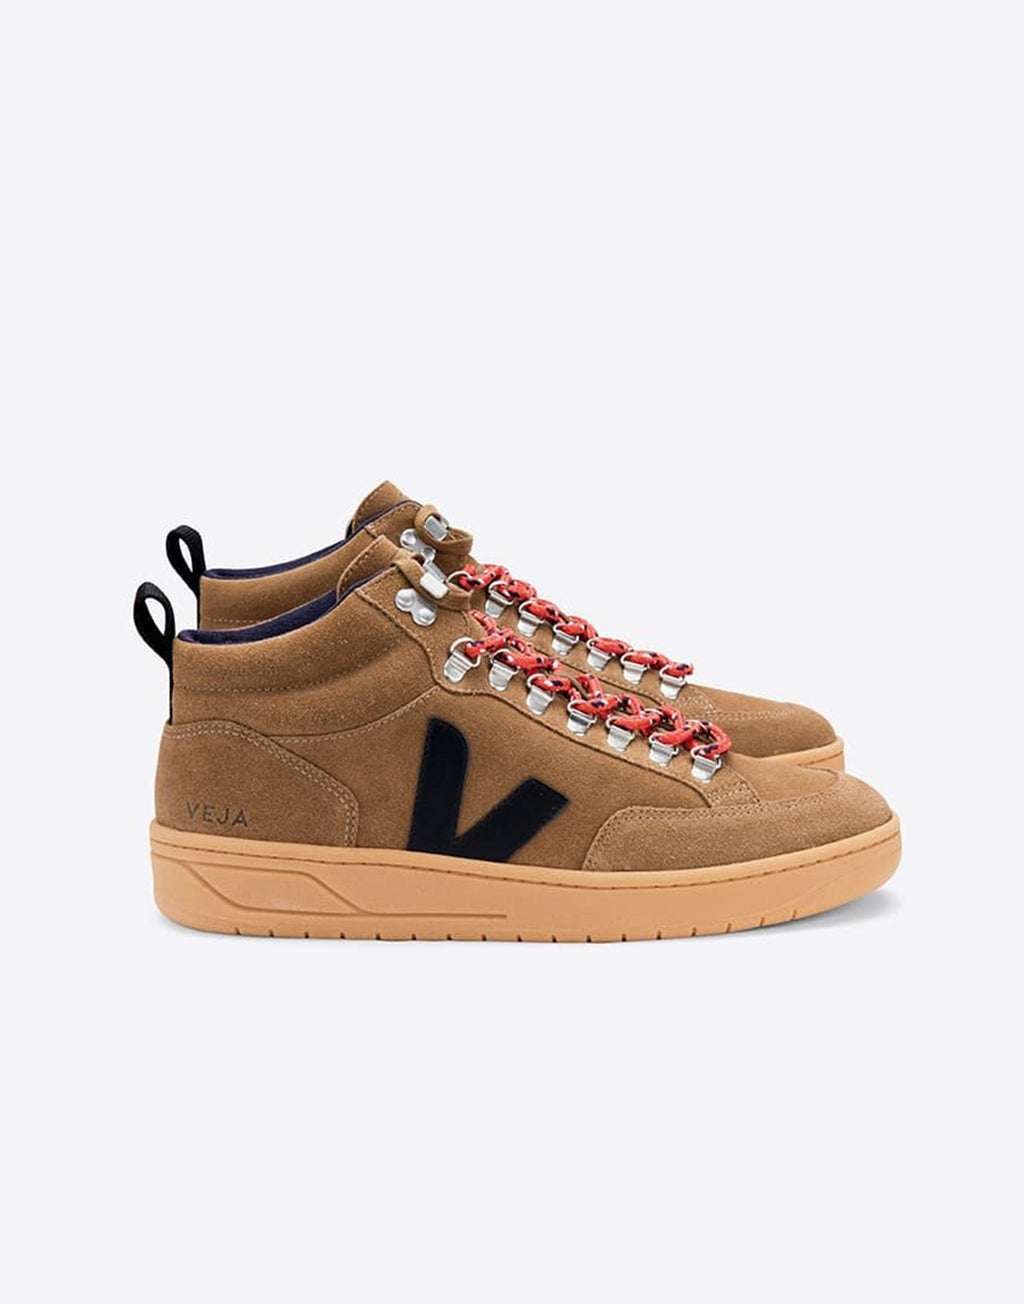 VEJA Roraima Suede Brown Black Gum Sole